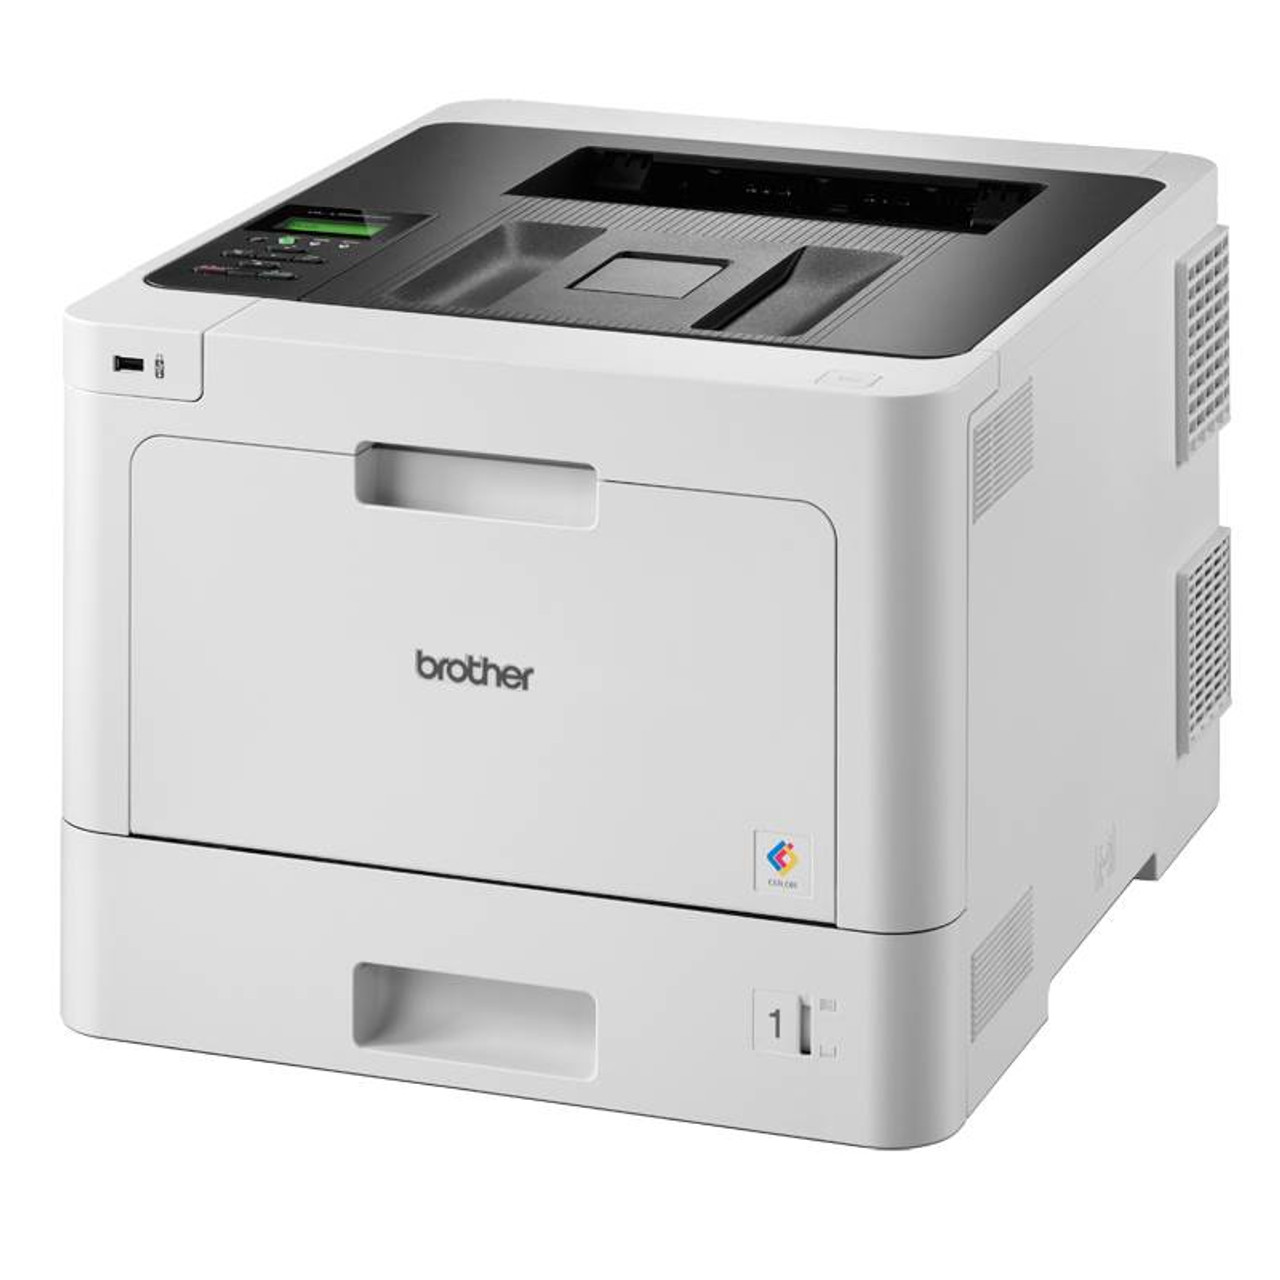 Product image for Brother HL-L8260CDW Colour Wireless Laser Printer | CX Computer Superstore